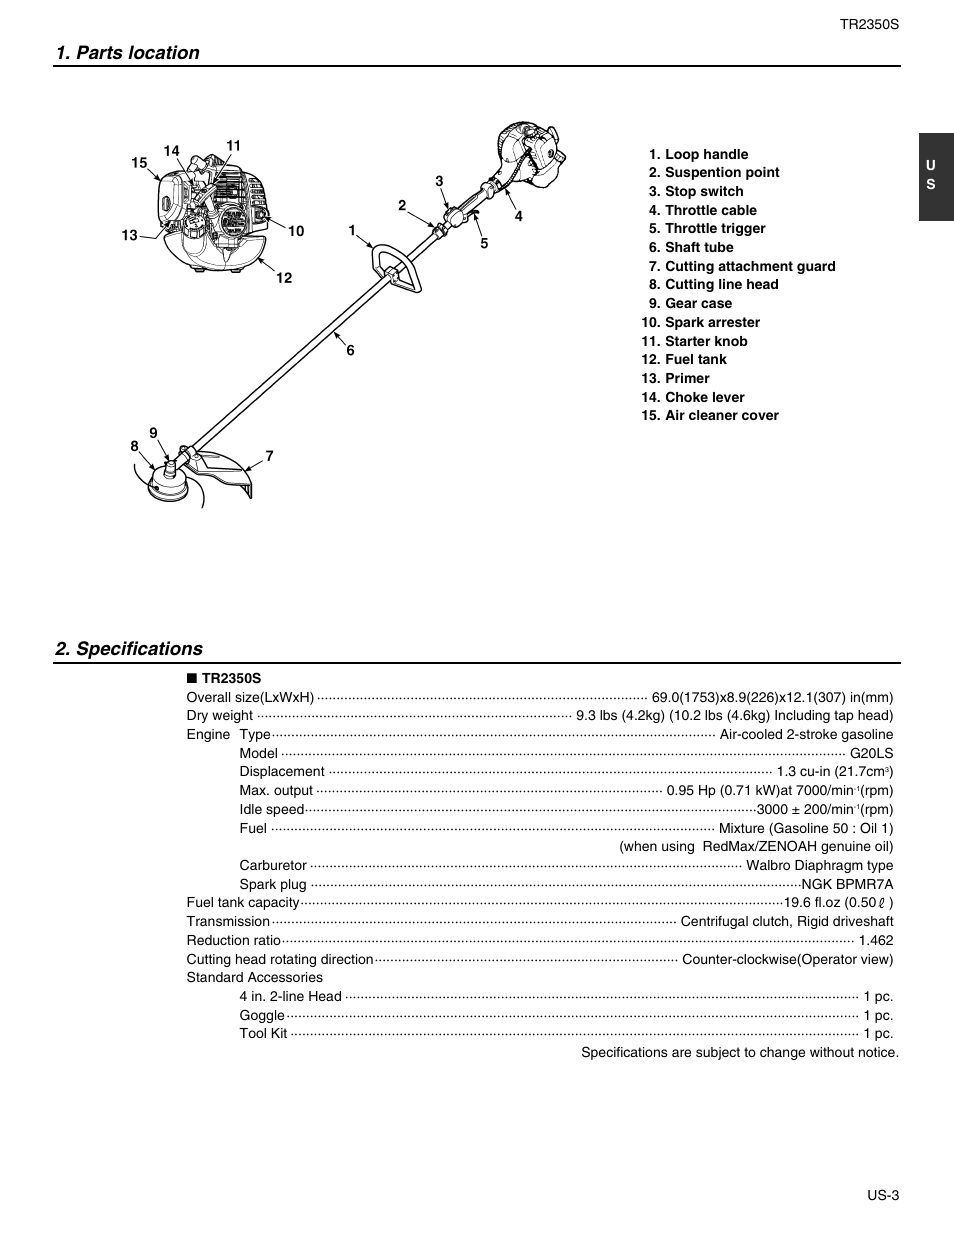 redmax tr2350s page5 parts location, specifications redmax tr2350s user manual page 5